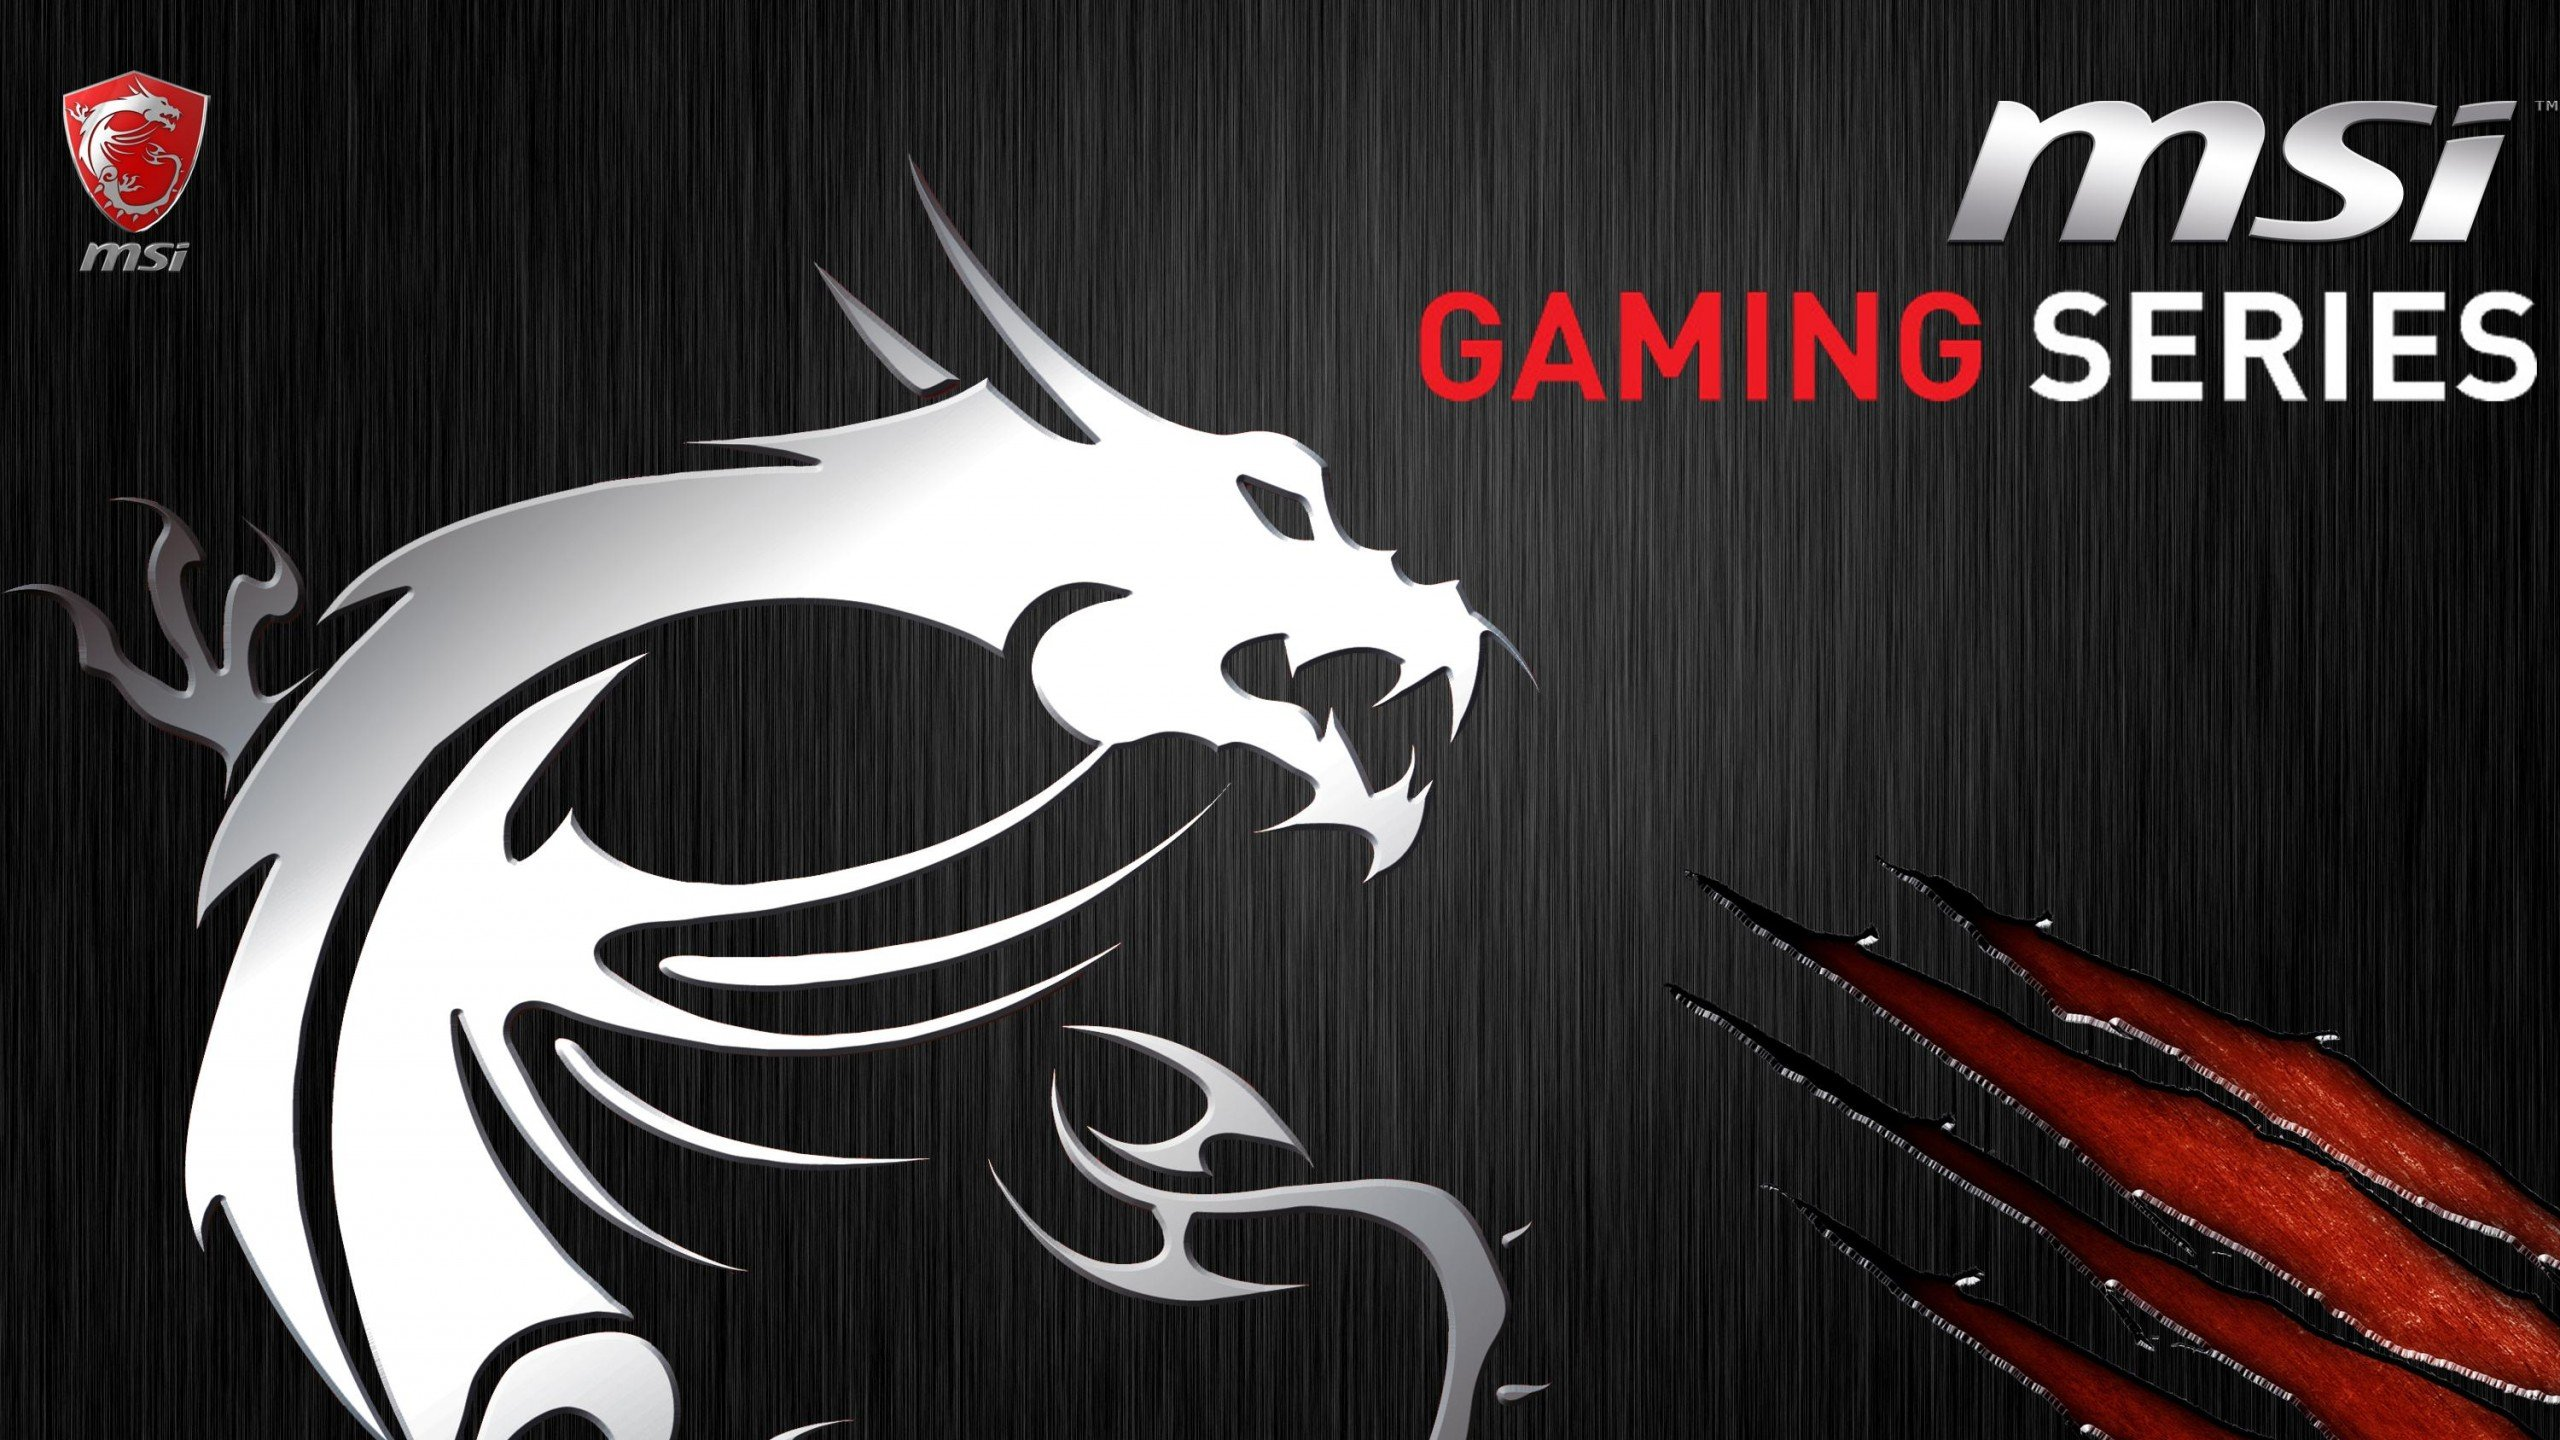 Msi gaming Wallpaper 2560x1440   Wallpaper   HD Desktops High 2560x1440